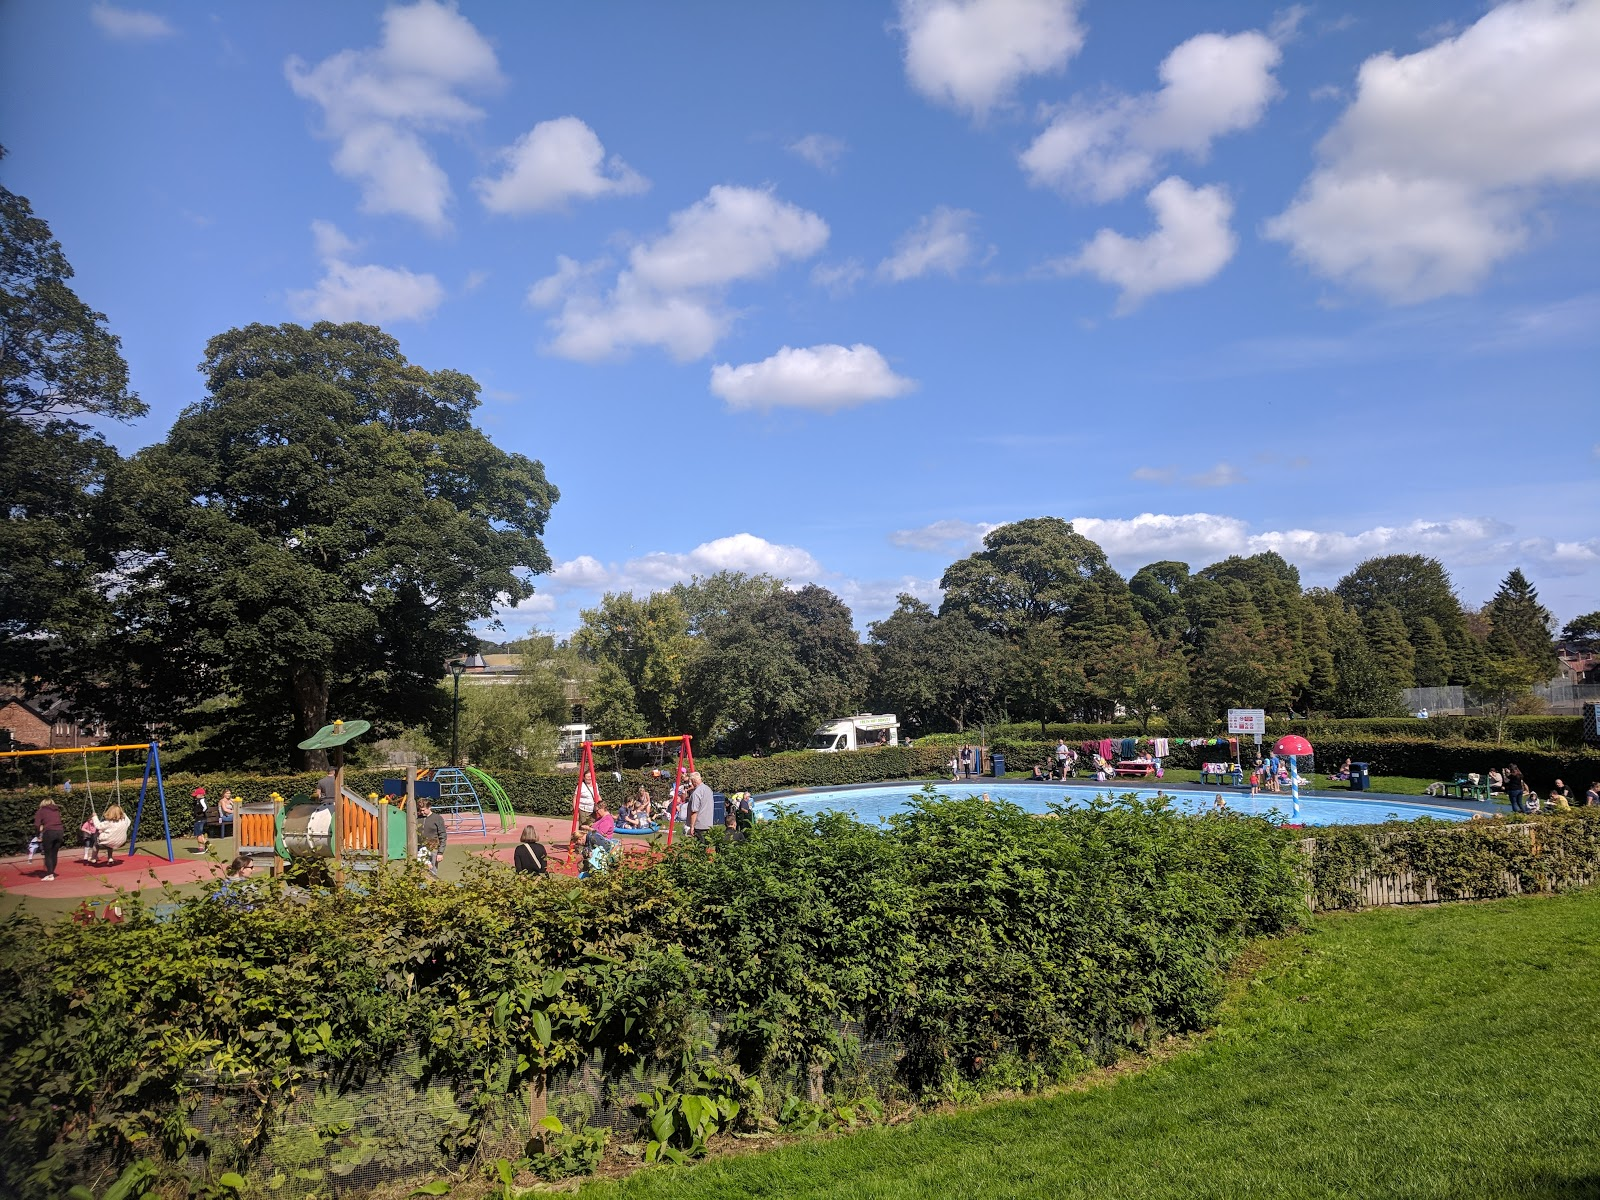 10 of the best family walks in North East England with a cafe and play park nearby - Carlisle Park Morpeth